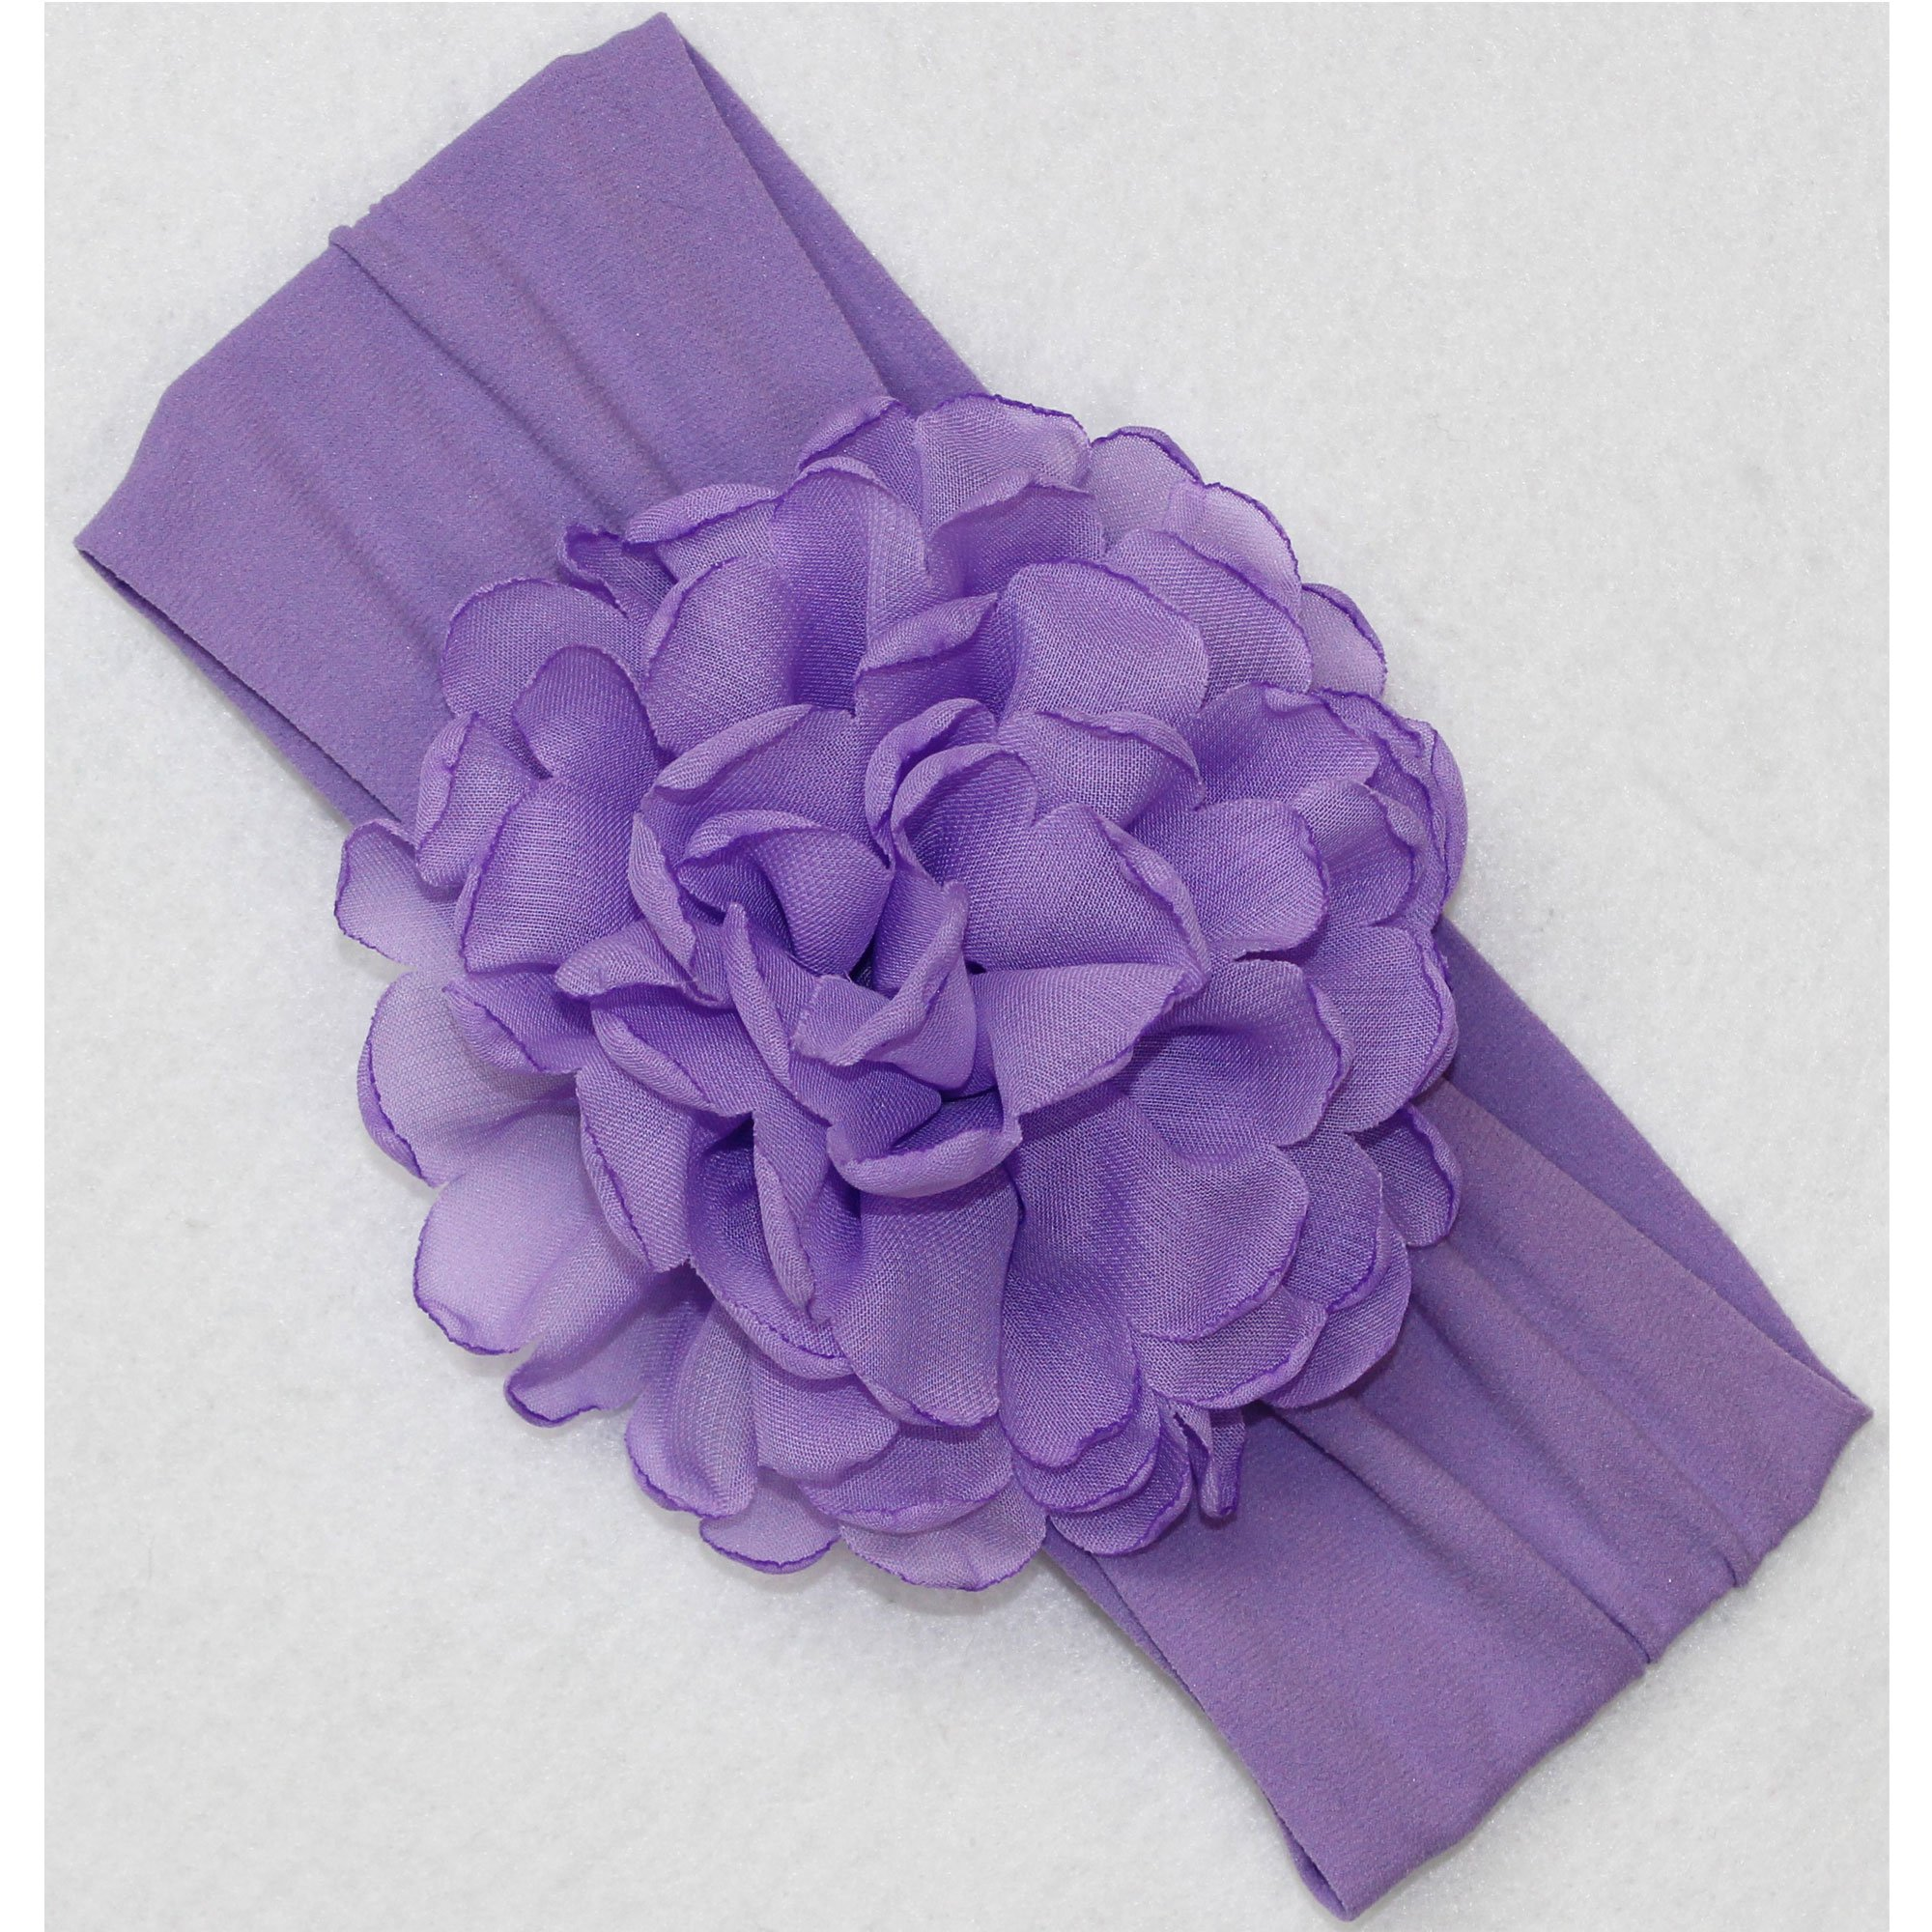 Beyond Creations Purple Peony Bloom Flower Headband